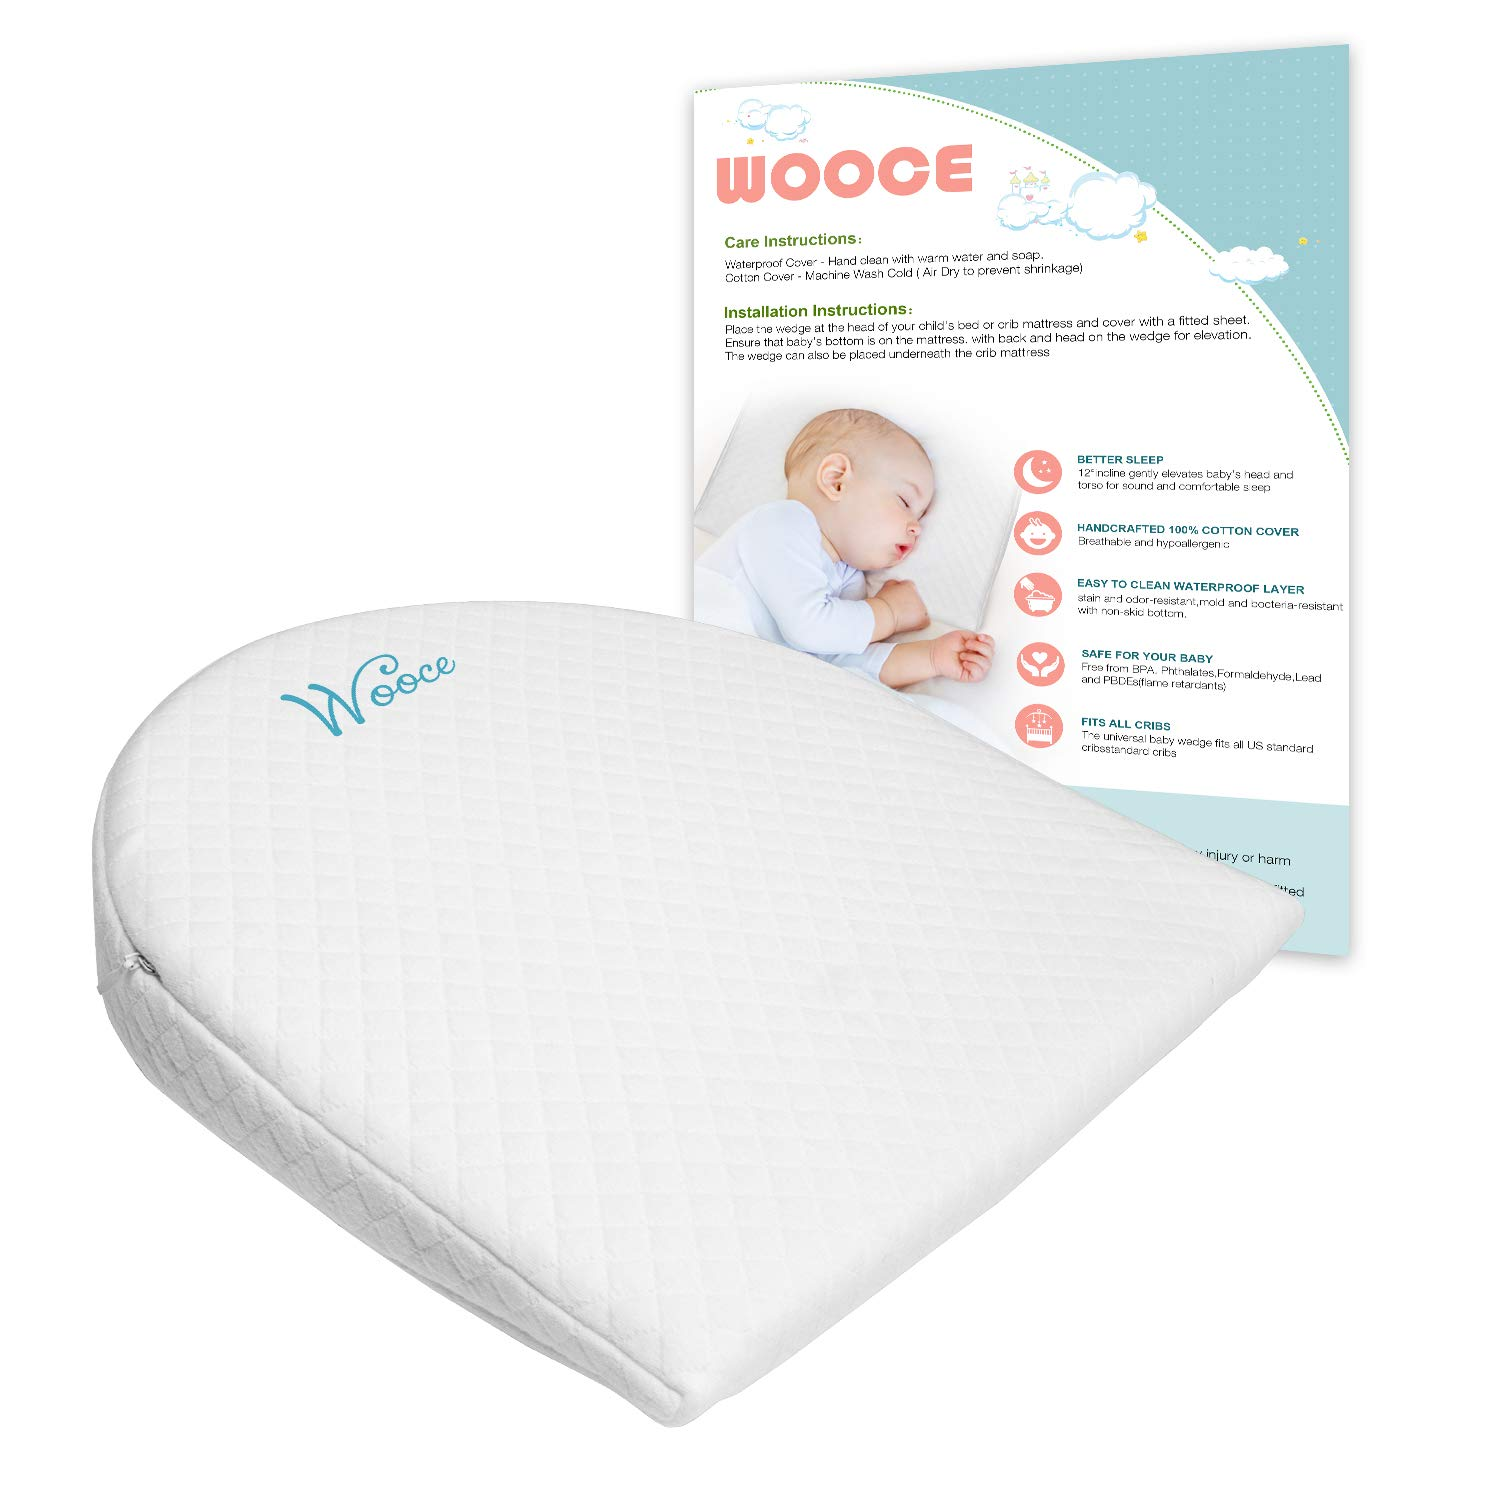 Bassinet Wedge for Baby Reflux | Baby Mattress | Infant Sleep Positioner with Removal Waterproof Cotton Cover |12-Degree Incline for Better Sleep Wooce